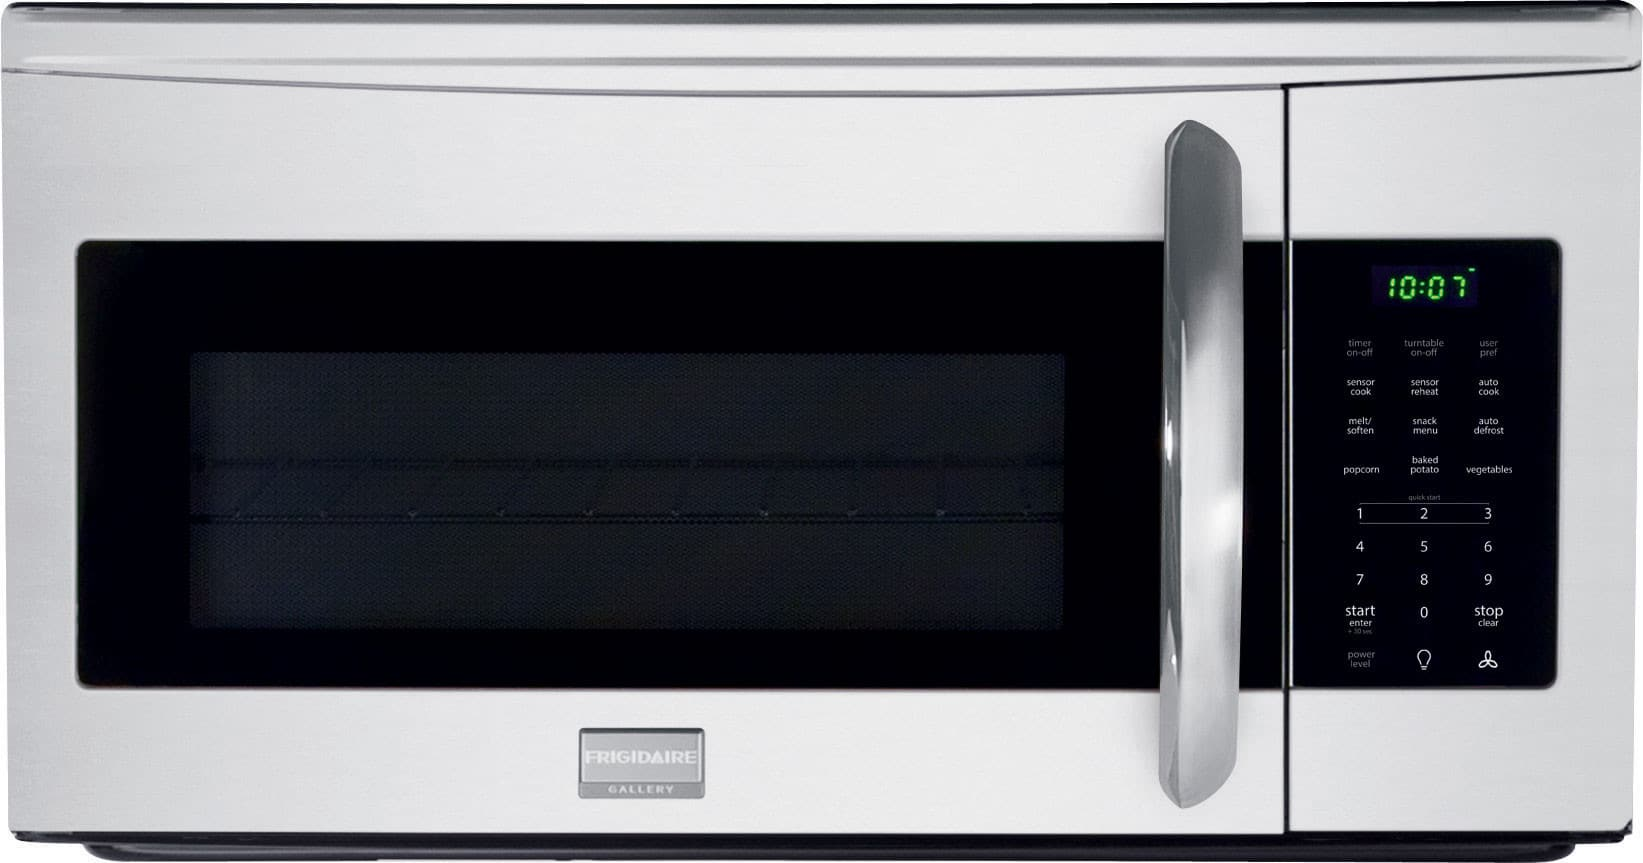 Frigidaire Fgmv175qf 30 Inch Over The Range Microwave Oven